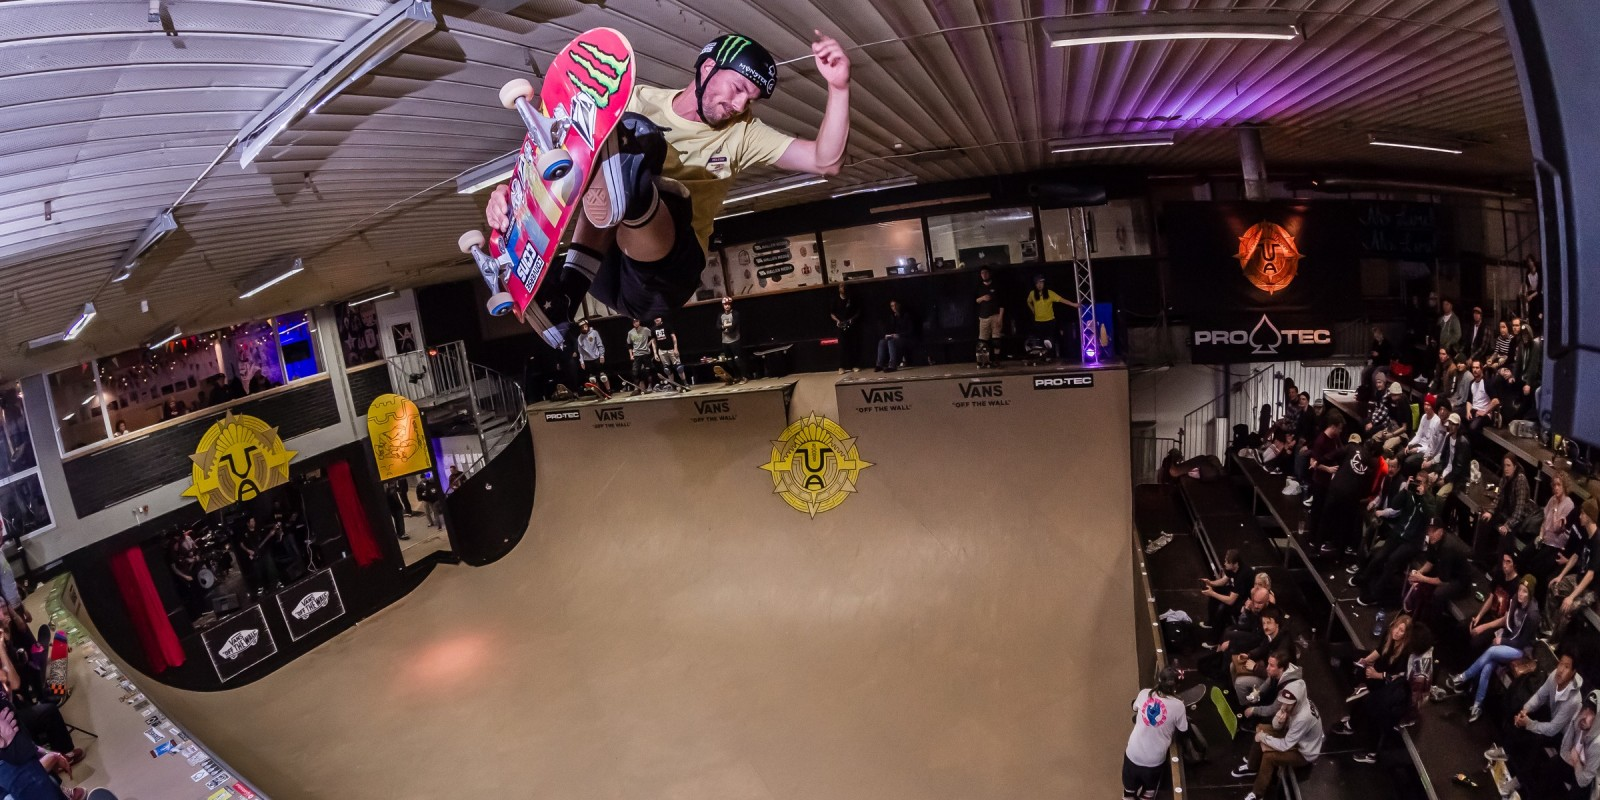 Sam Beckett is prequalified for the 2017 Vert Attack. Sam will be blasting air and planting eggs with @runeglifberg this Friday and Saturday in Malmo, Sweden.